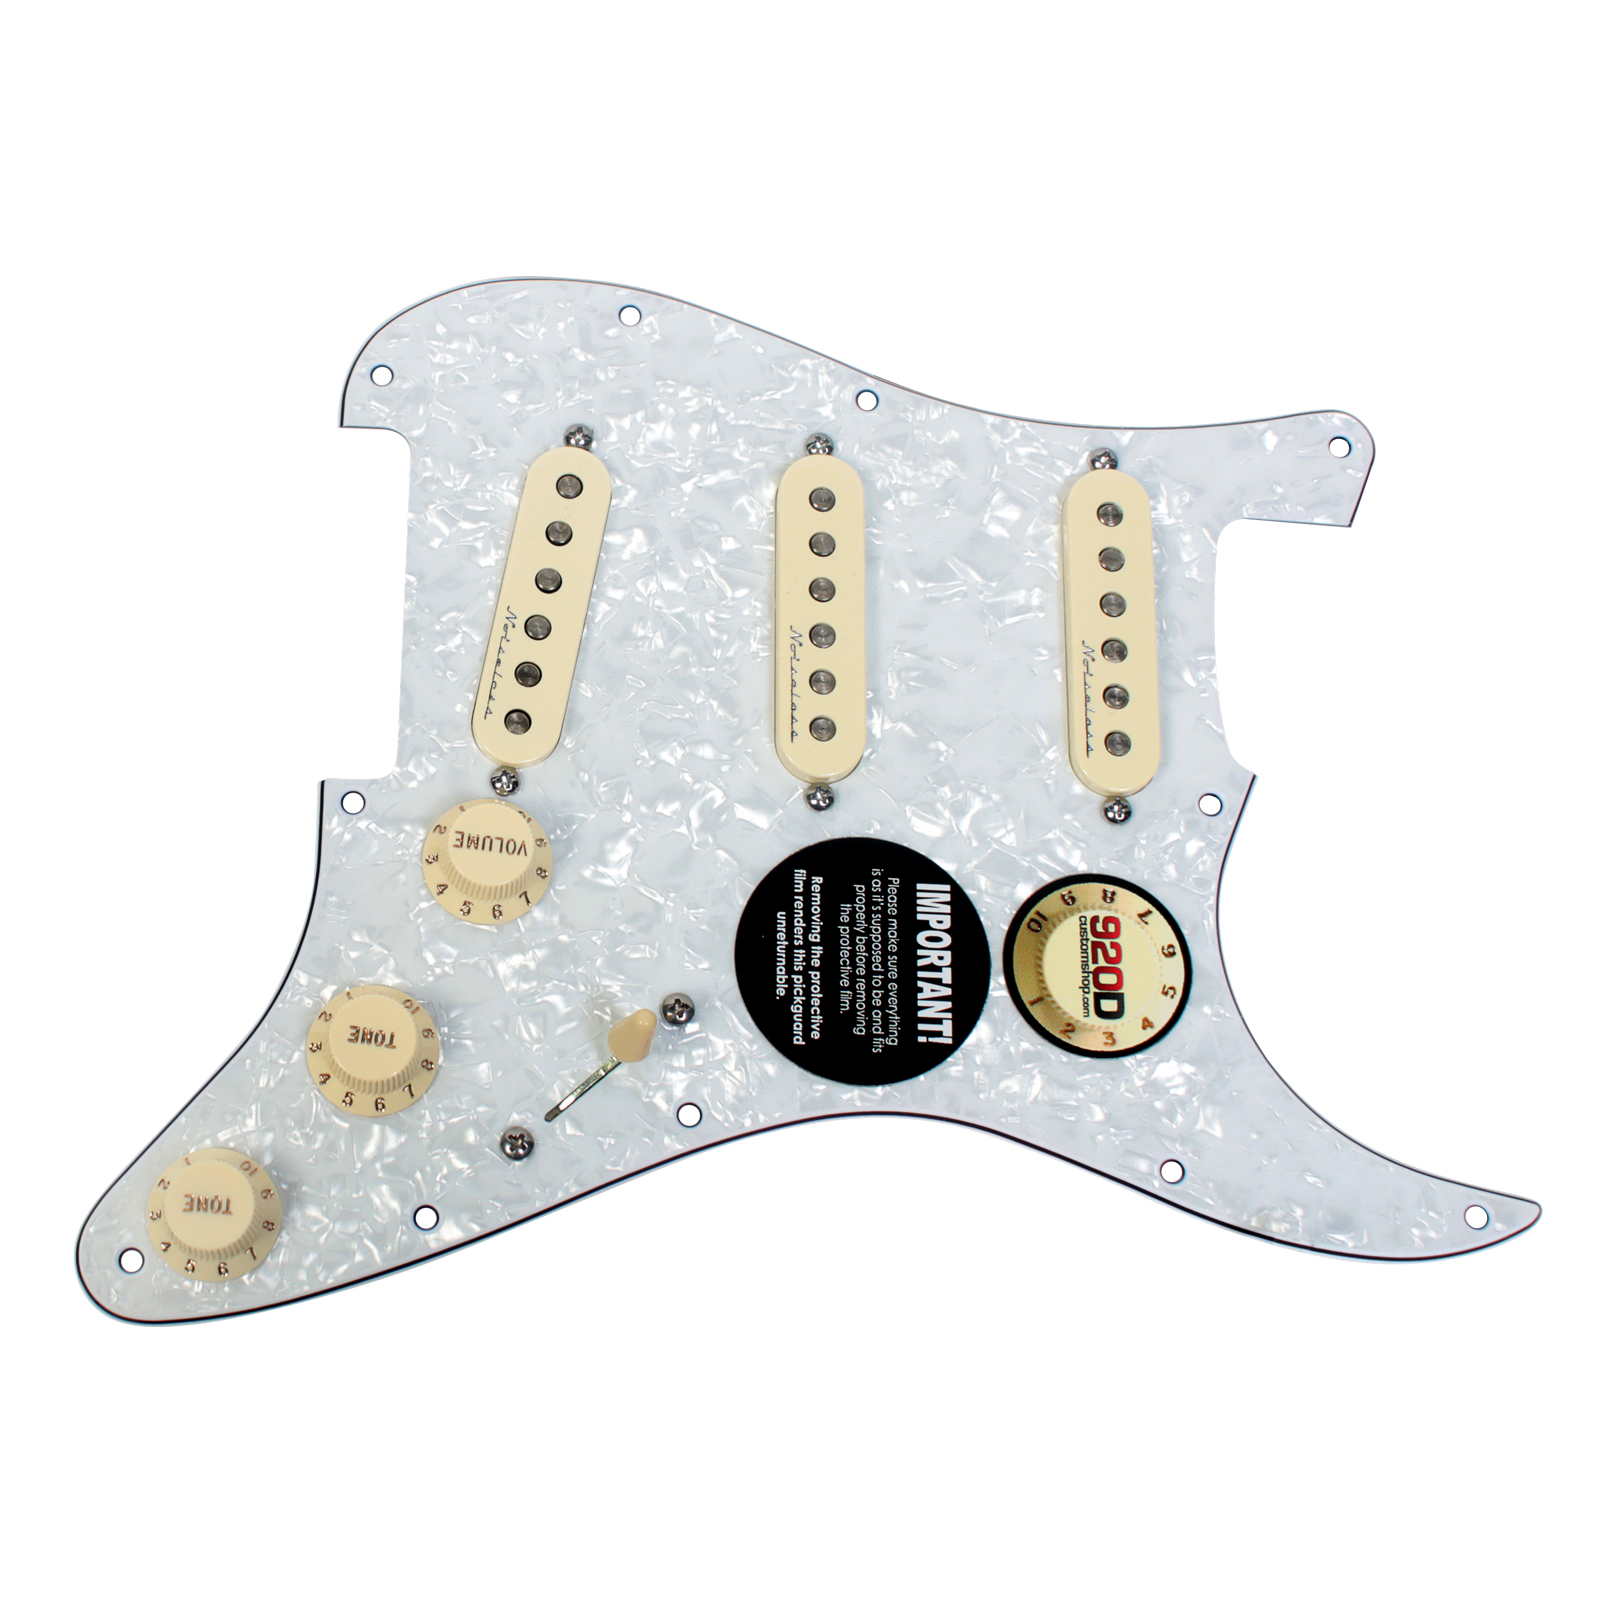 Fender Jeff Beck Hot Noiseless Loaded Pickguard White Pearl / Aged White